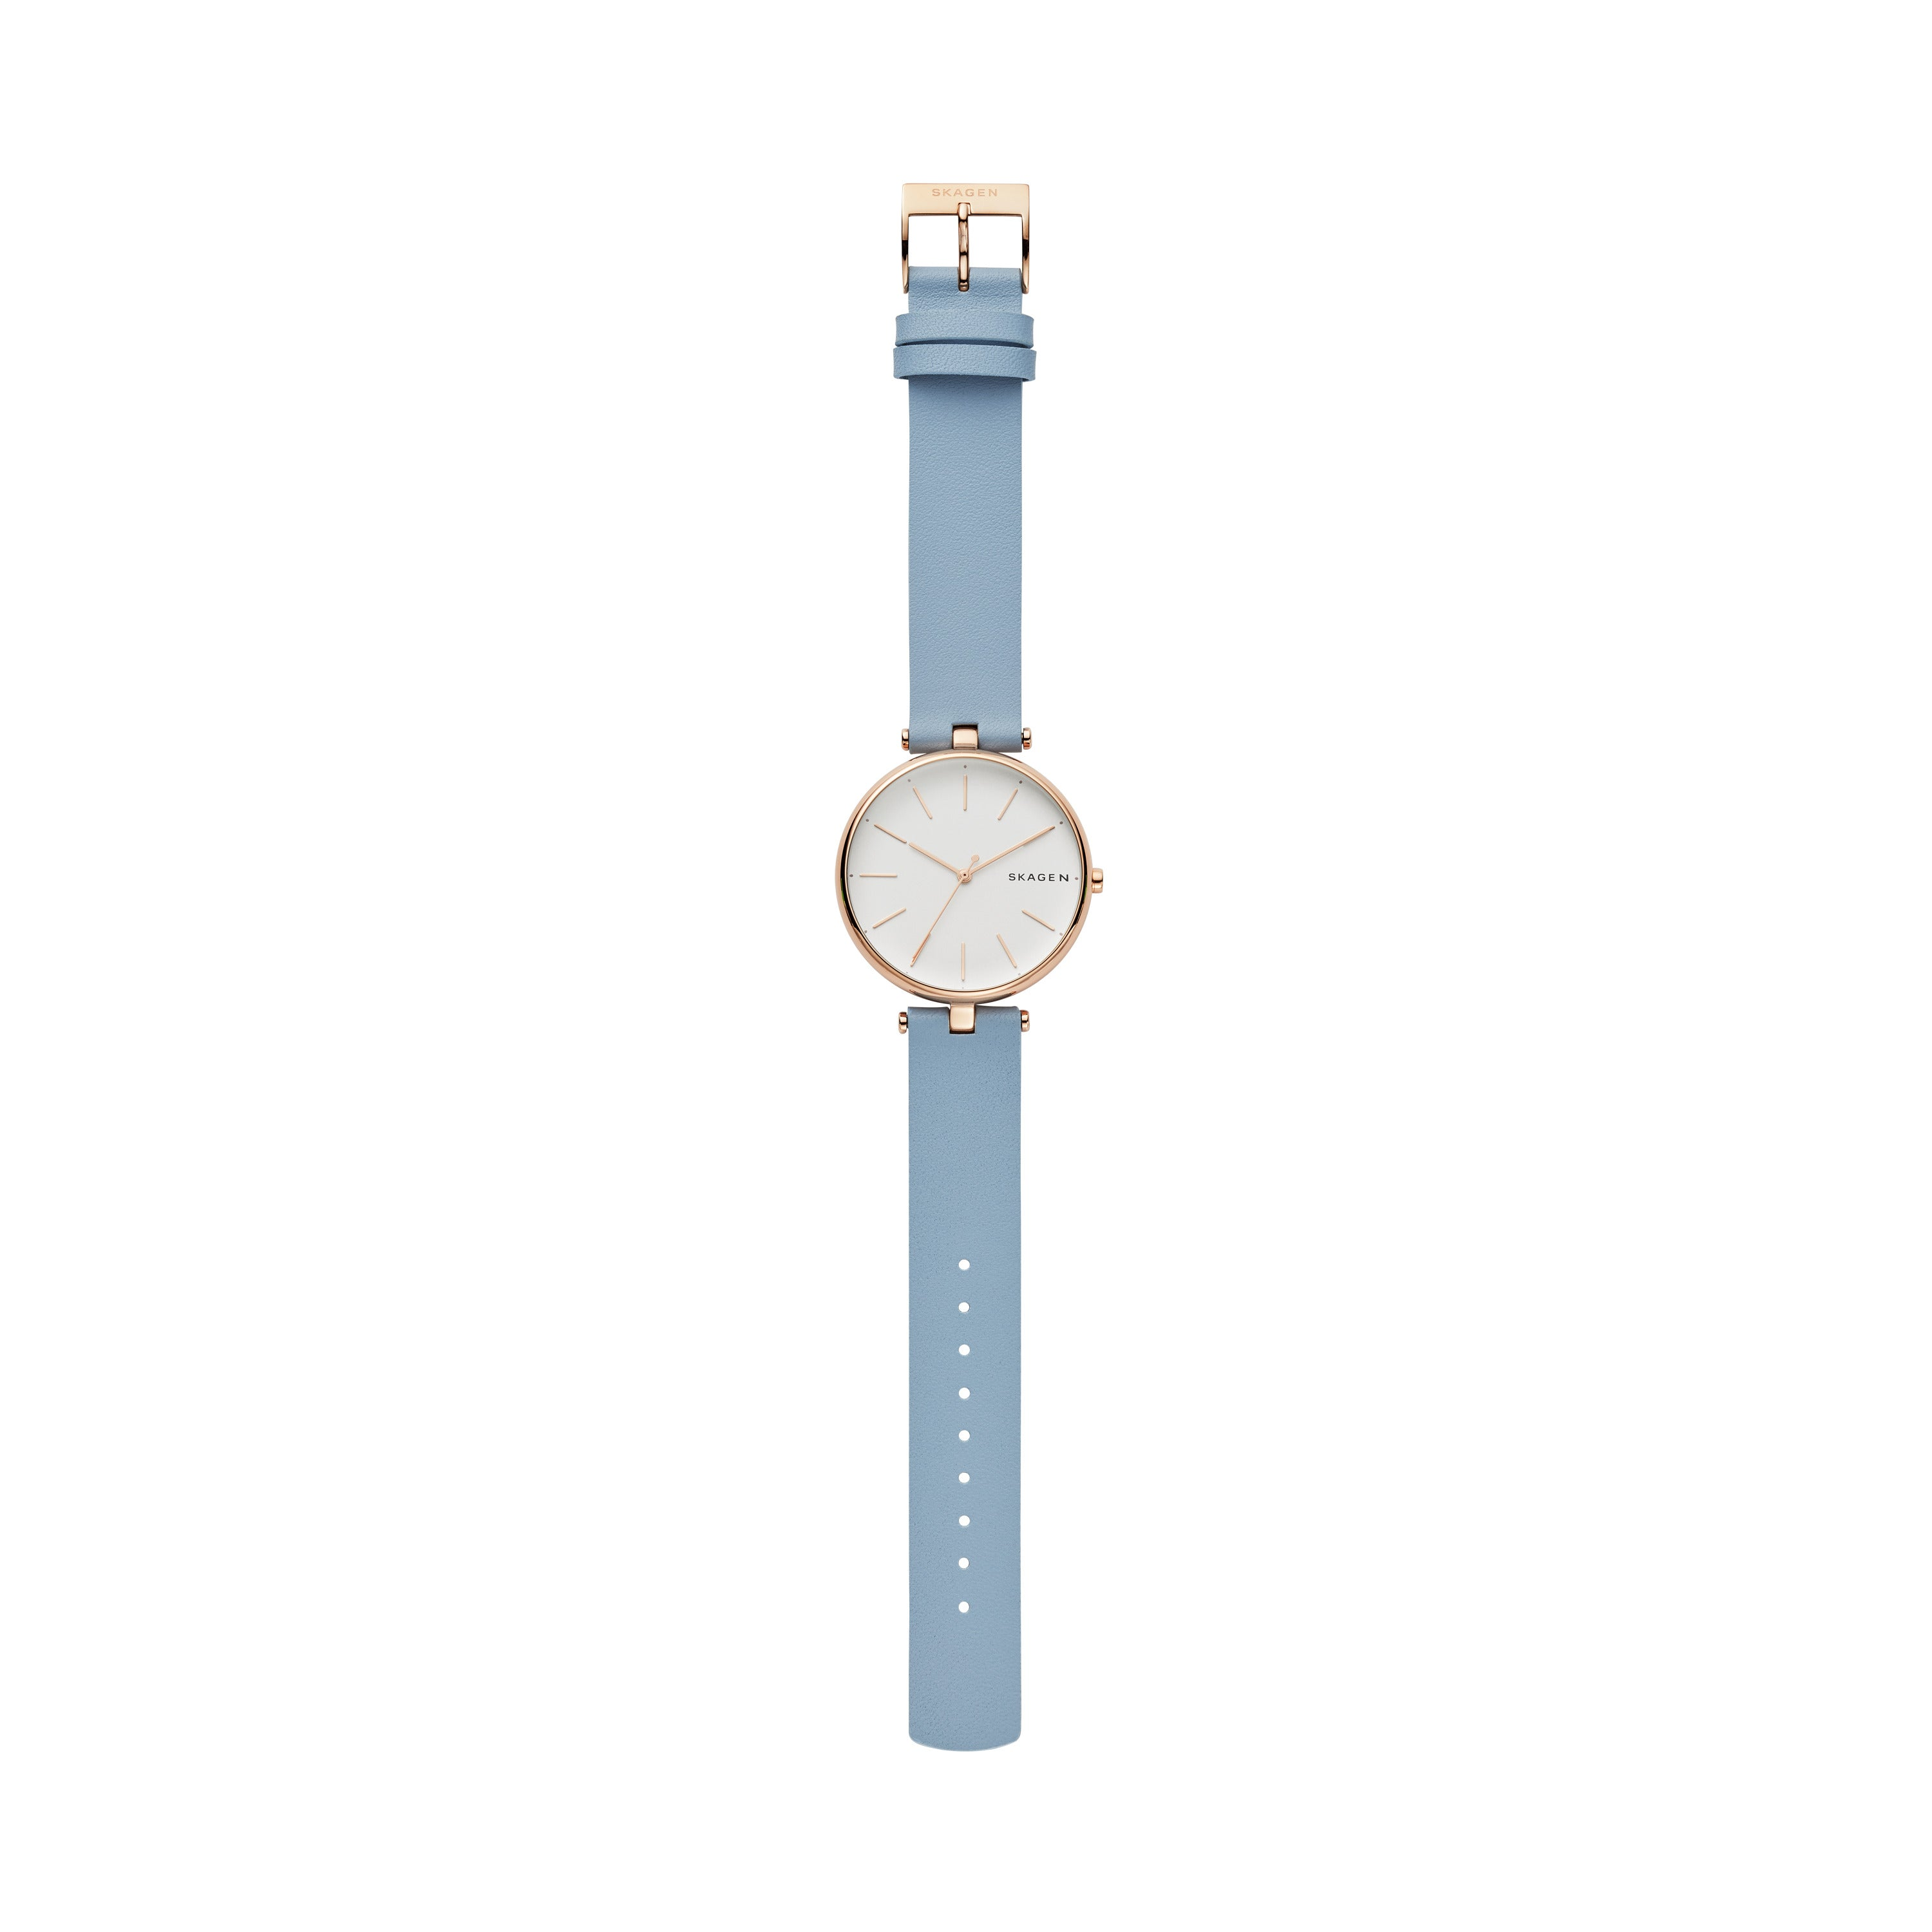 Signatur T Bar Blue Leather Watch